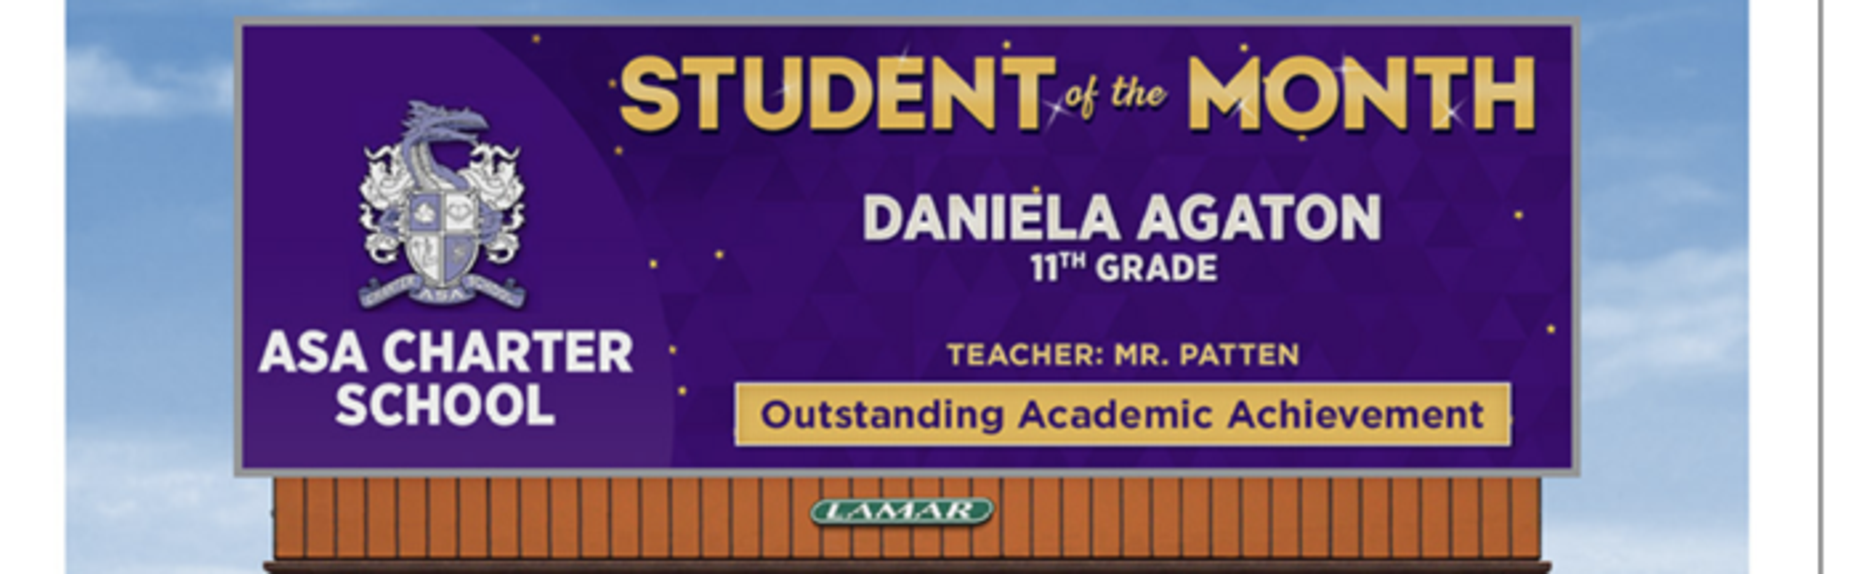 11th grade student of the month